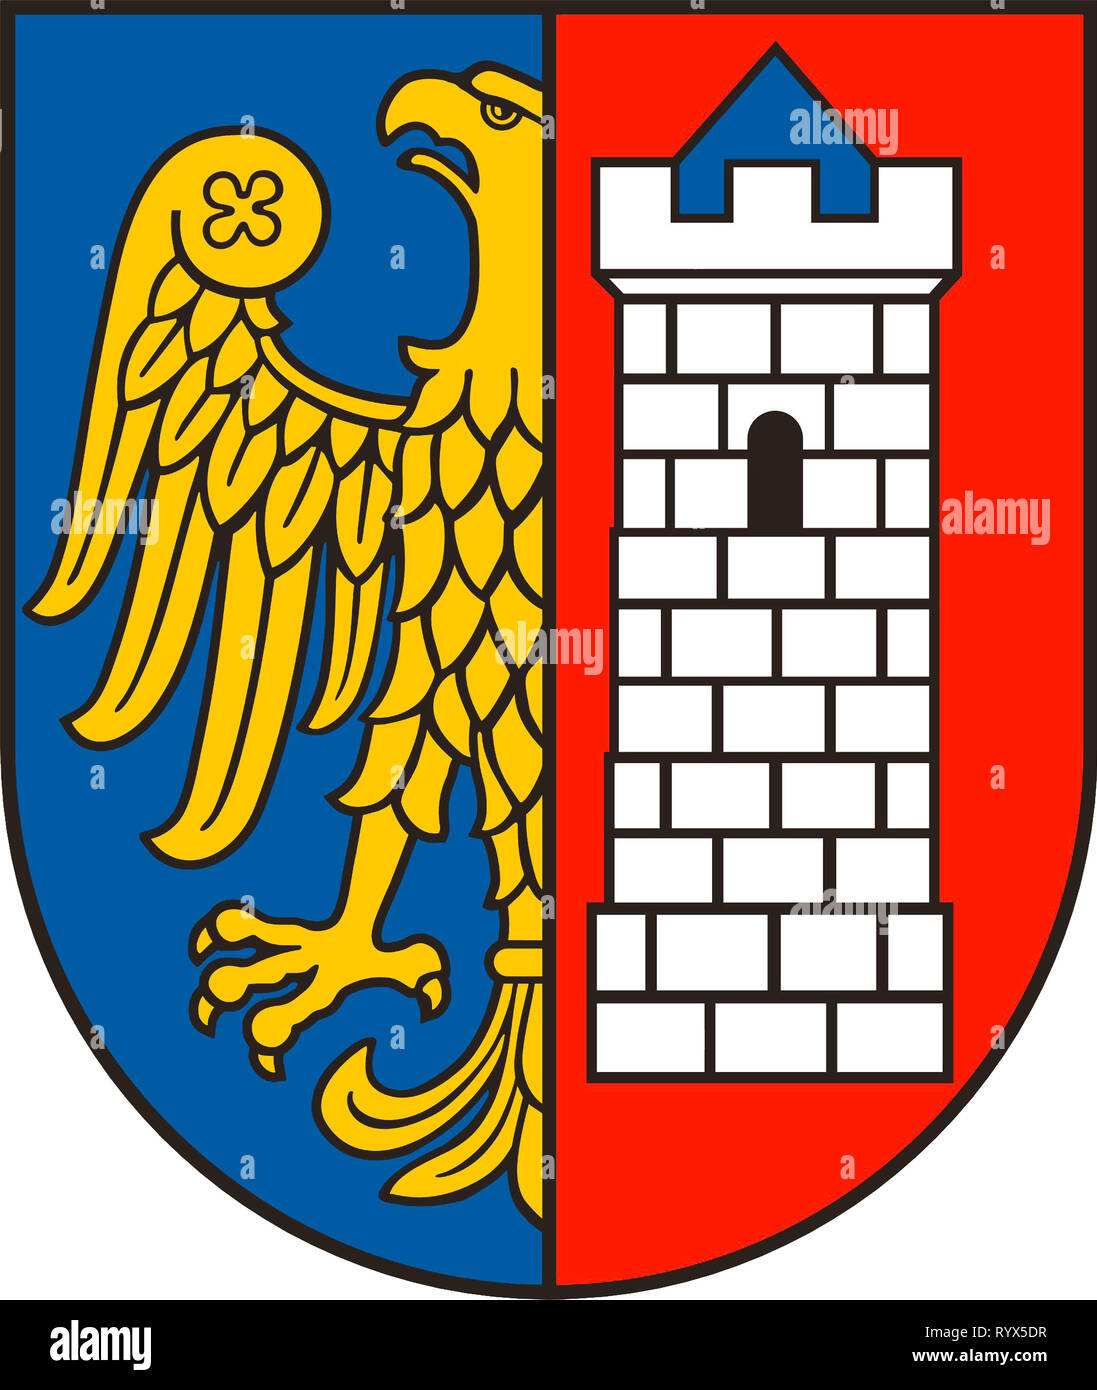 Coat of arms of the Polish city of Gliwice - Poland. - Stock Image